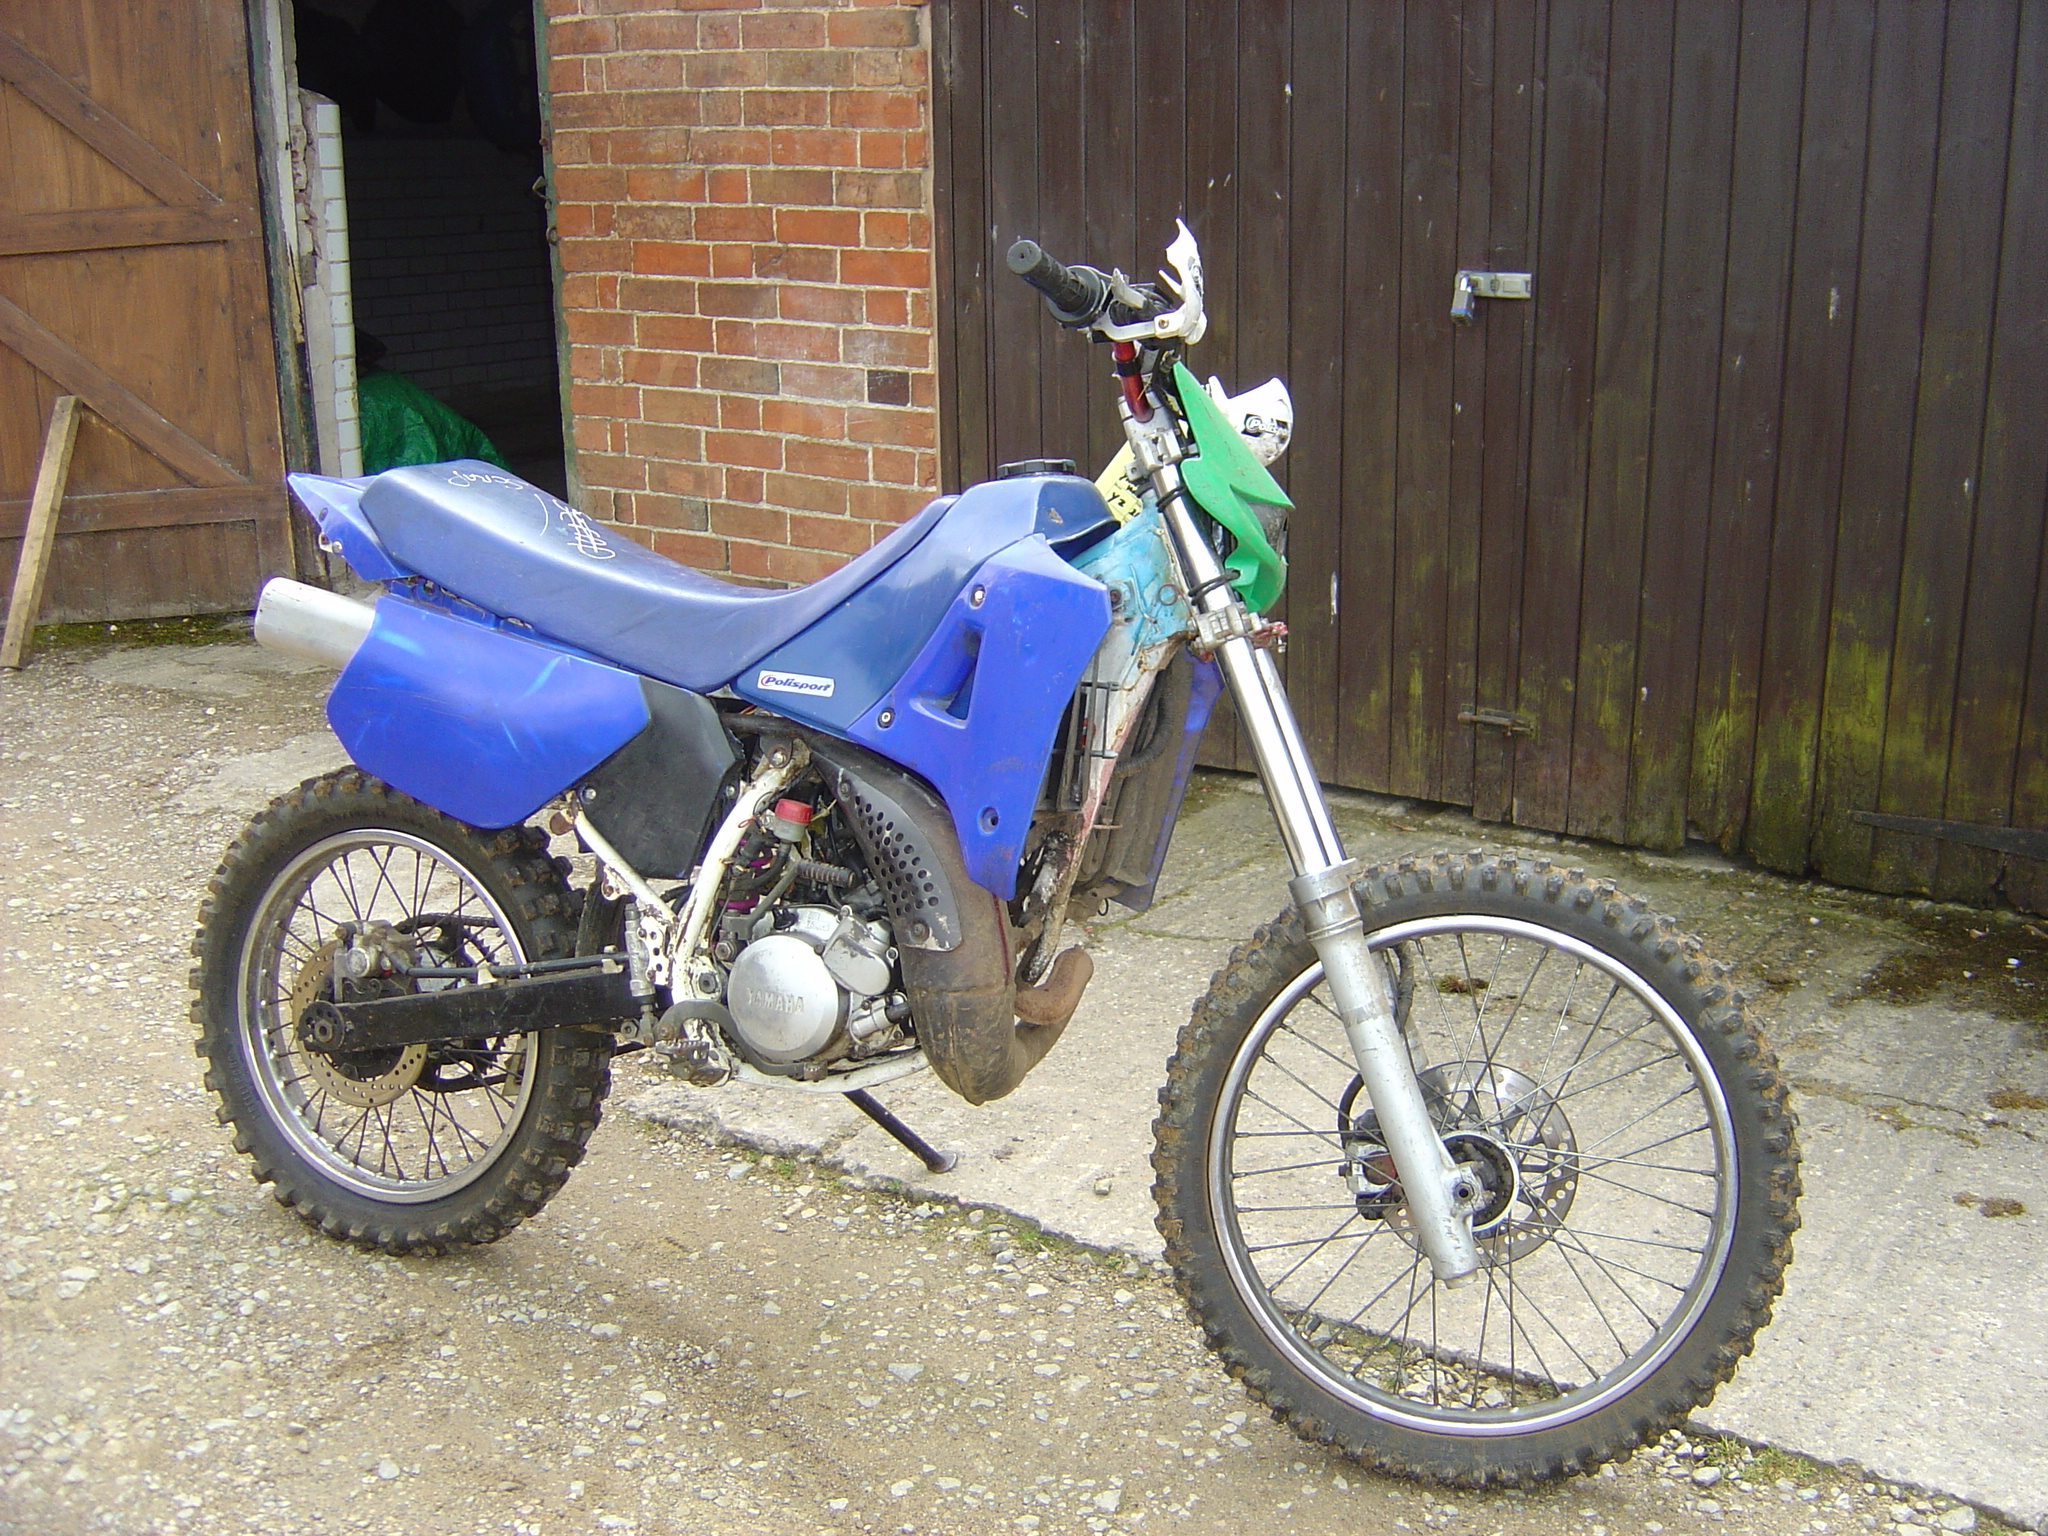 Yamaha DTR 125 before breaking for Spare Parts - Motor Cycle Breaking